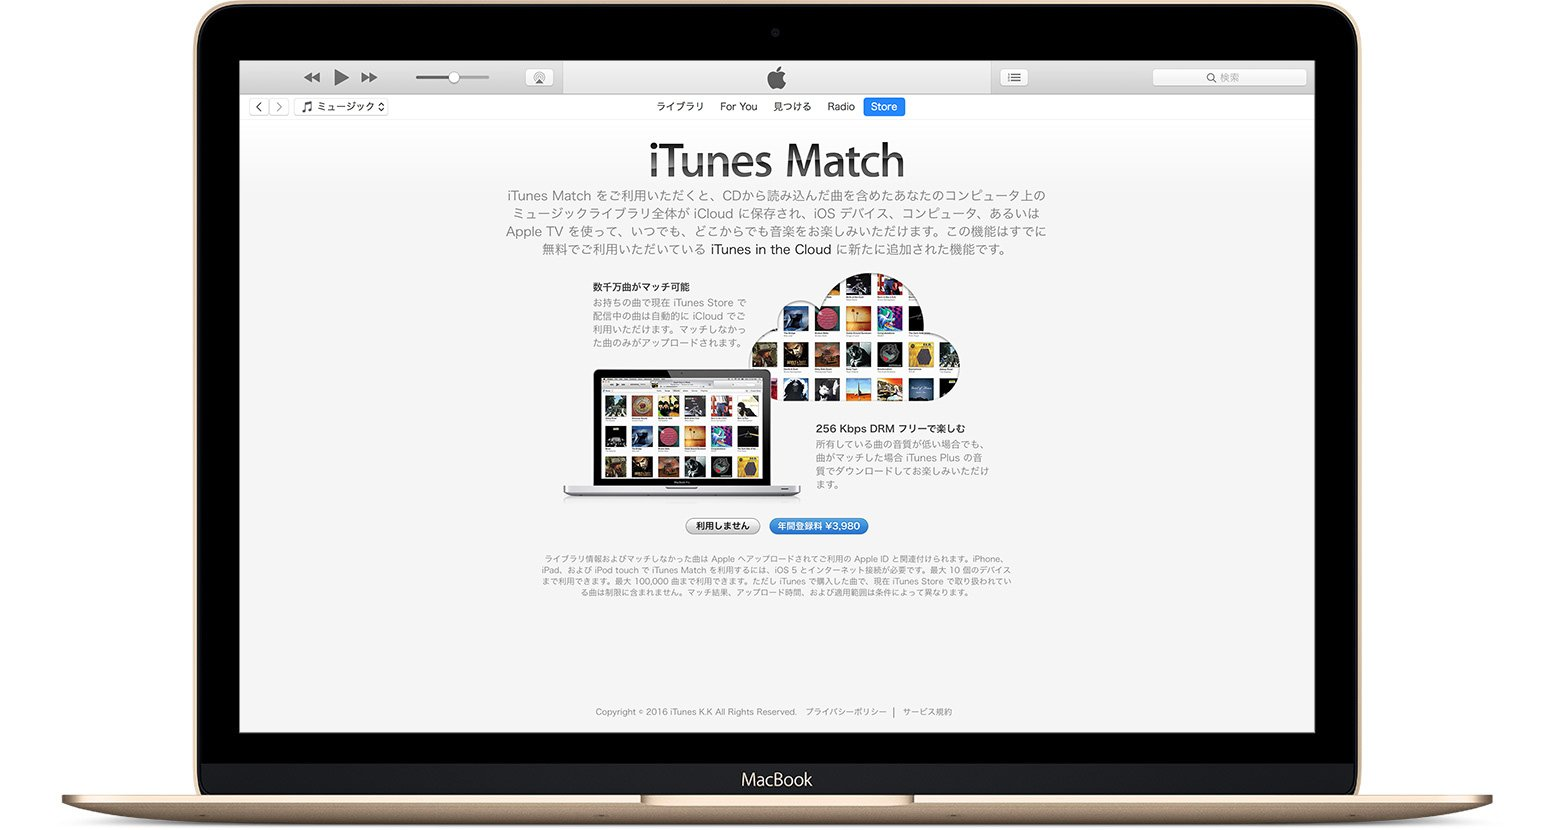 img 5a67520d1124e - いま話題のサービス!itunes matchの知識